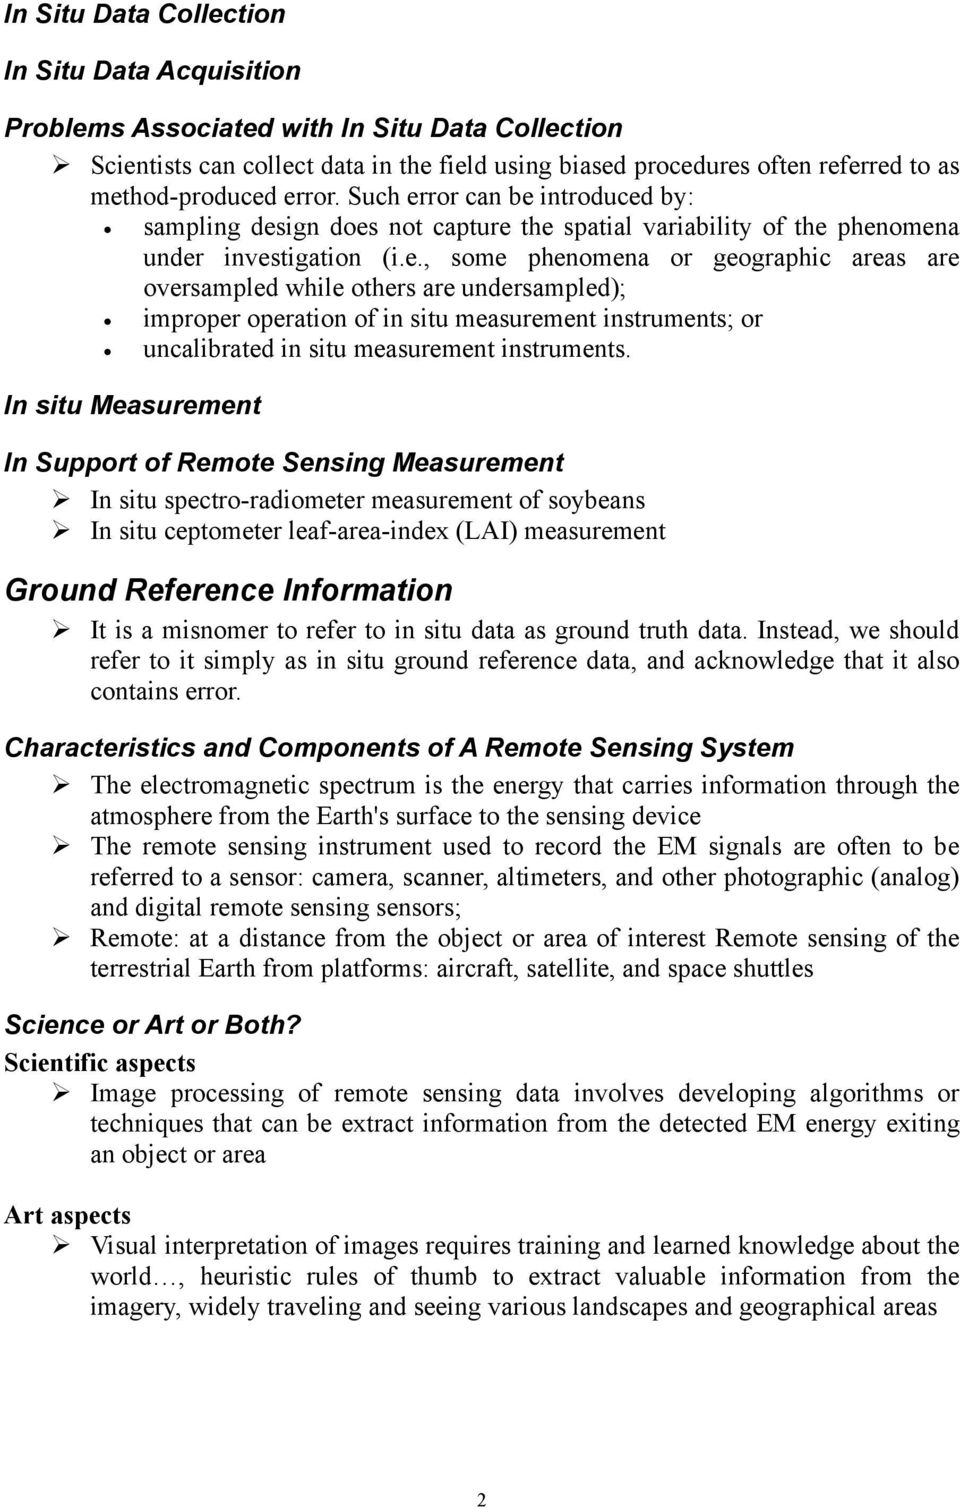 In situ Measurement In Support of Remote Sensing Measurement In situ spectro-radiometer measurement of soybeans In situ ceptometer leaf-area-index (LAI) measurement Ground Reference Information It is